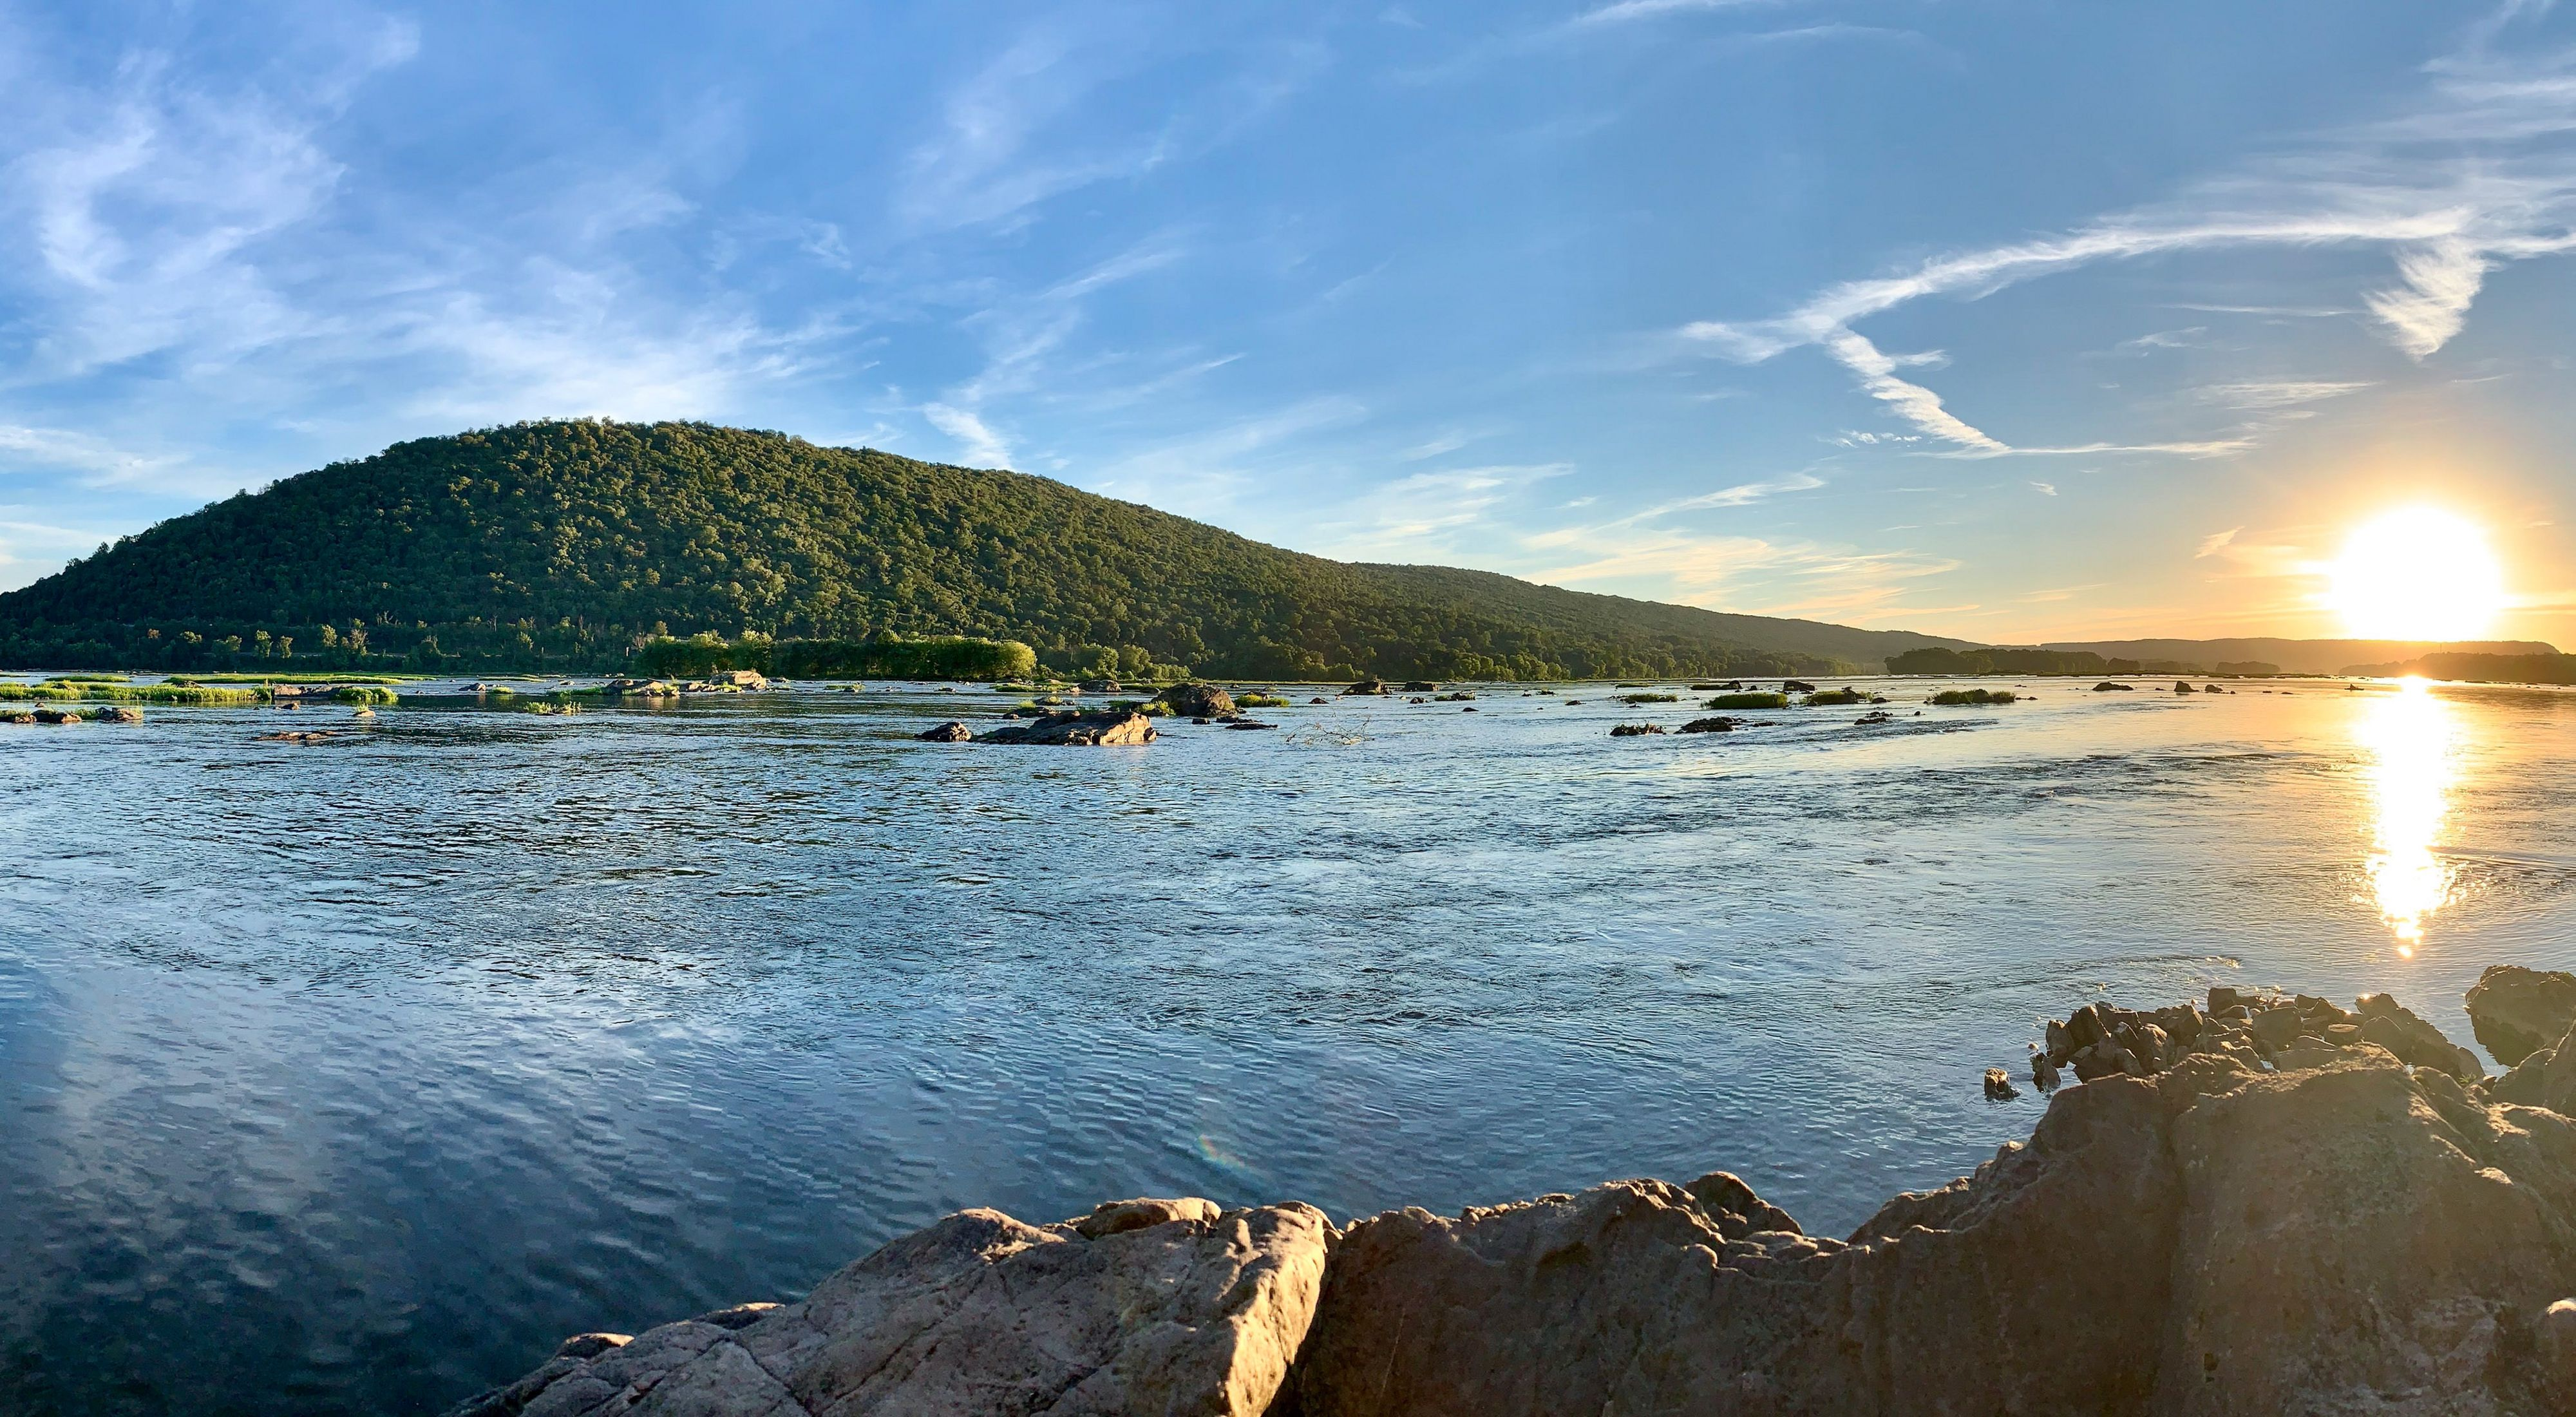 Early morning view of Cove Mountain across the Susquehanna River.